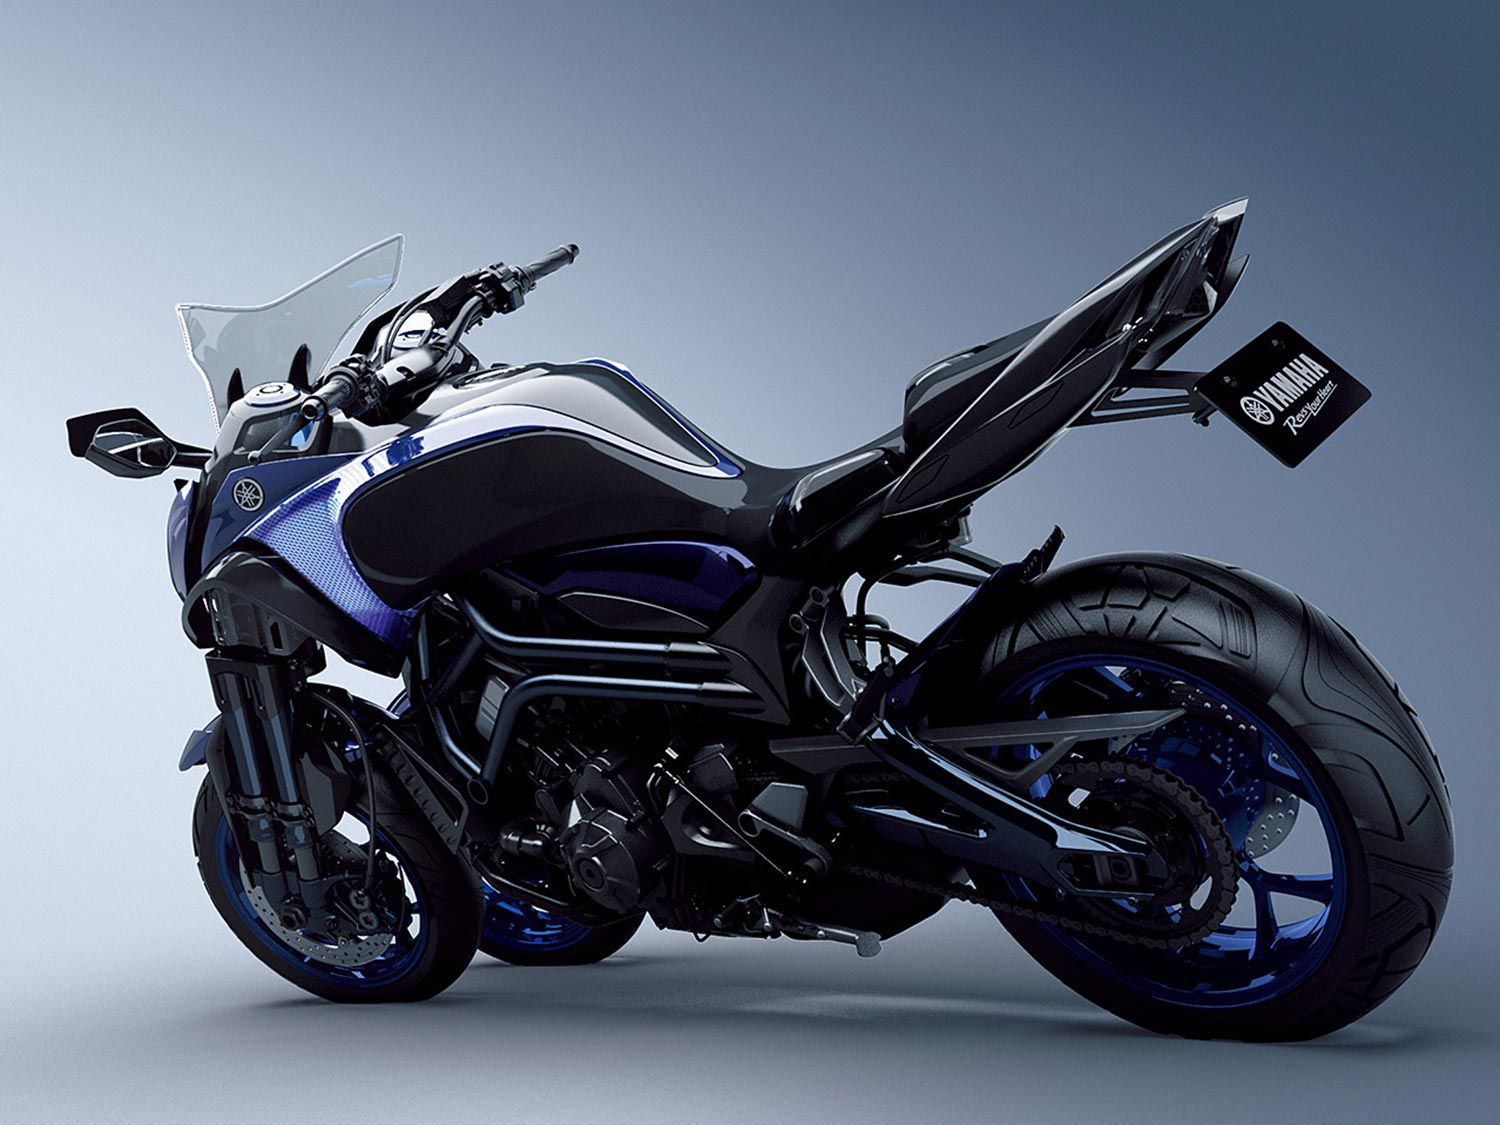 Making Sense Of The Yamaha Niken, A Motorcycle With Two